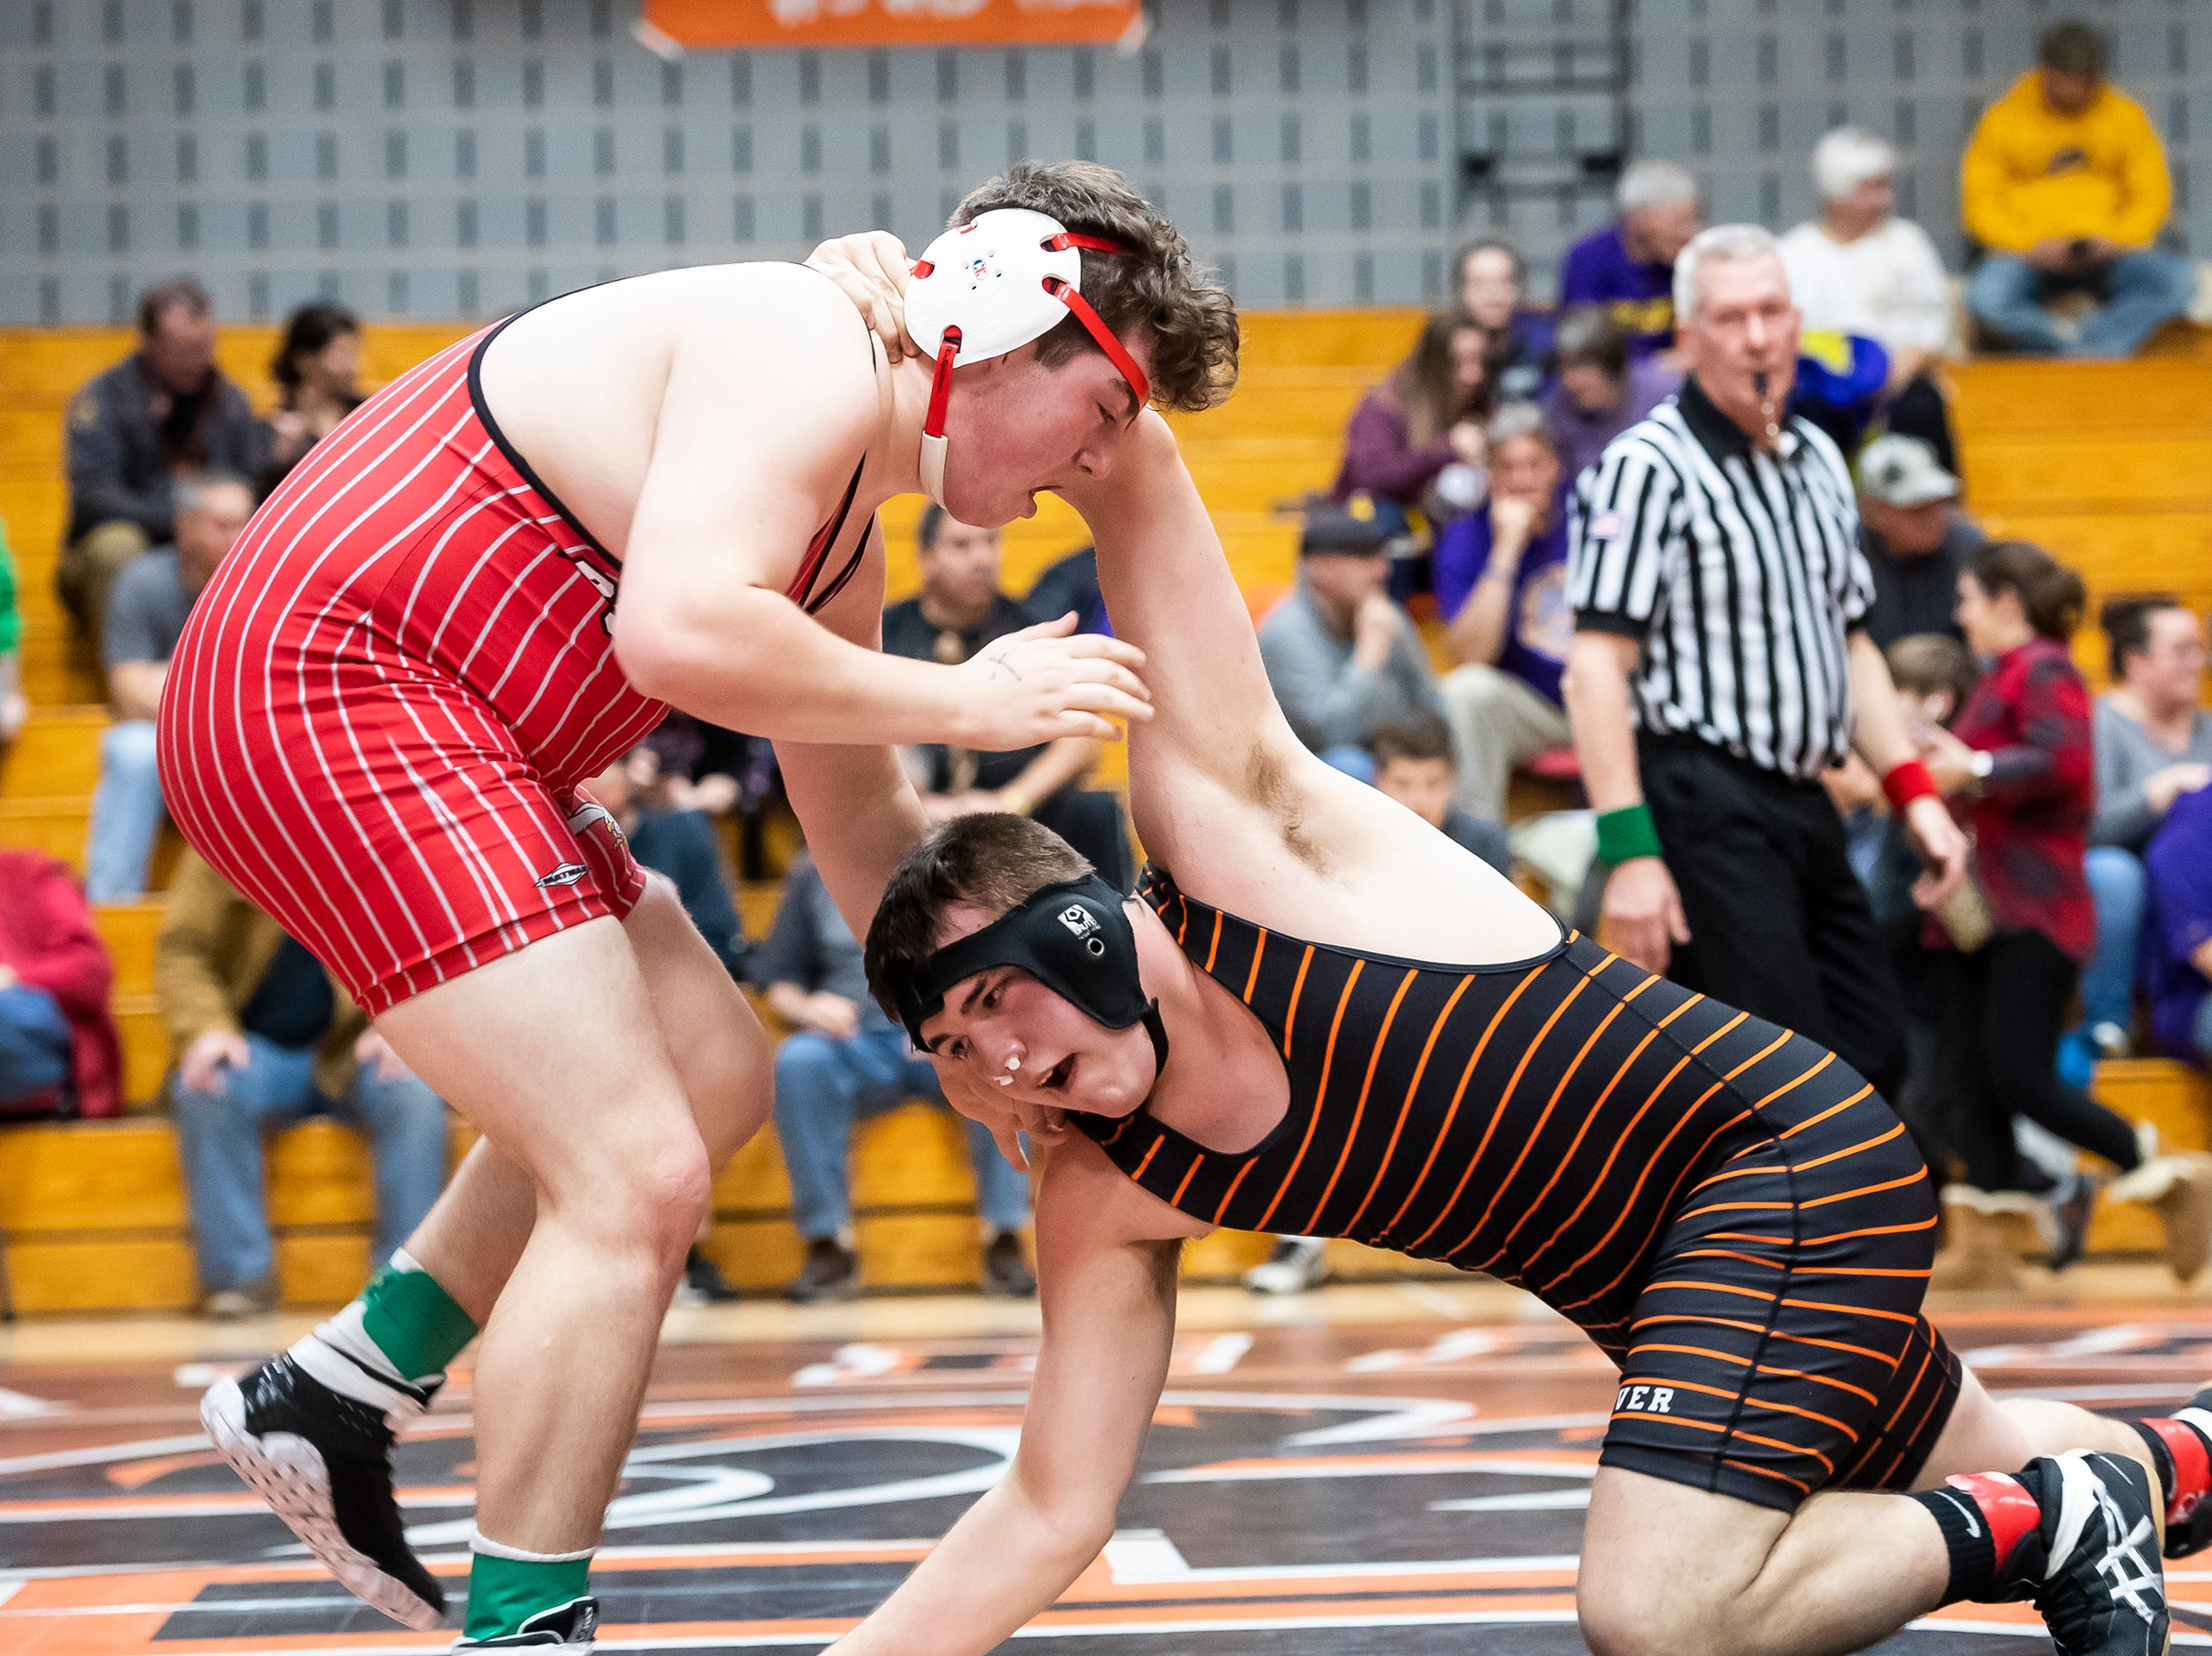 Hanover's Kardan Trish, right, wrestles Bermudian Springs Blaine Worden in a 220-pound bout during the first day of the District 3 Class 2A Section I tournament at Susquenita High School Friday, February 15, 2019. Trish won 3-1.